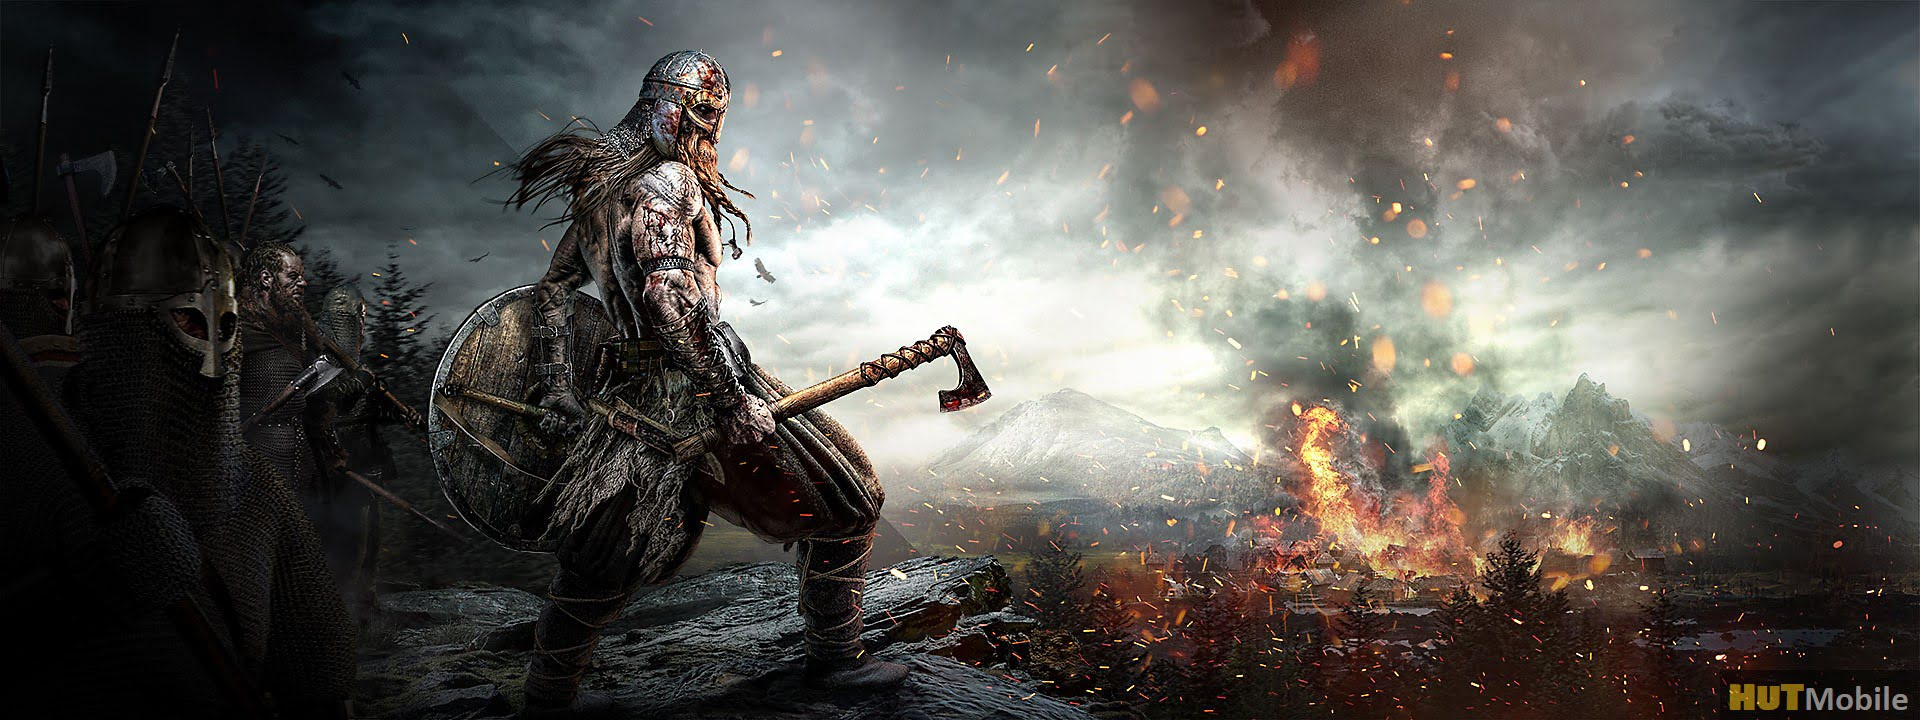 Ancestors Legacy Game System Requirements Can I Run It